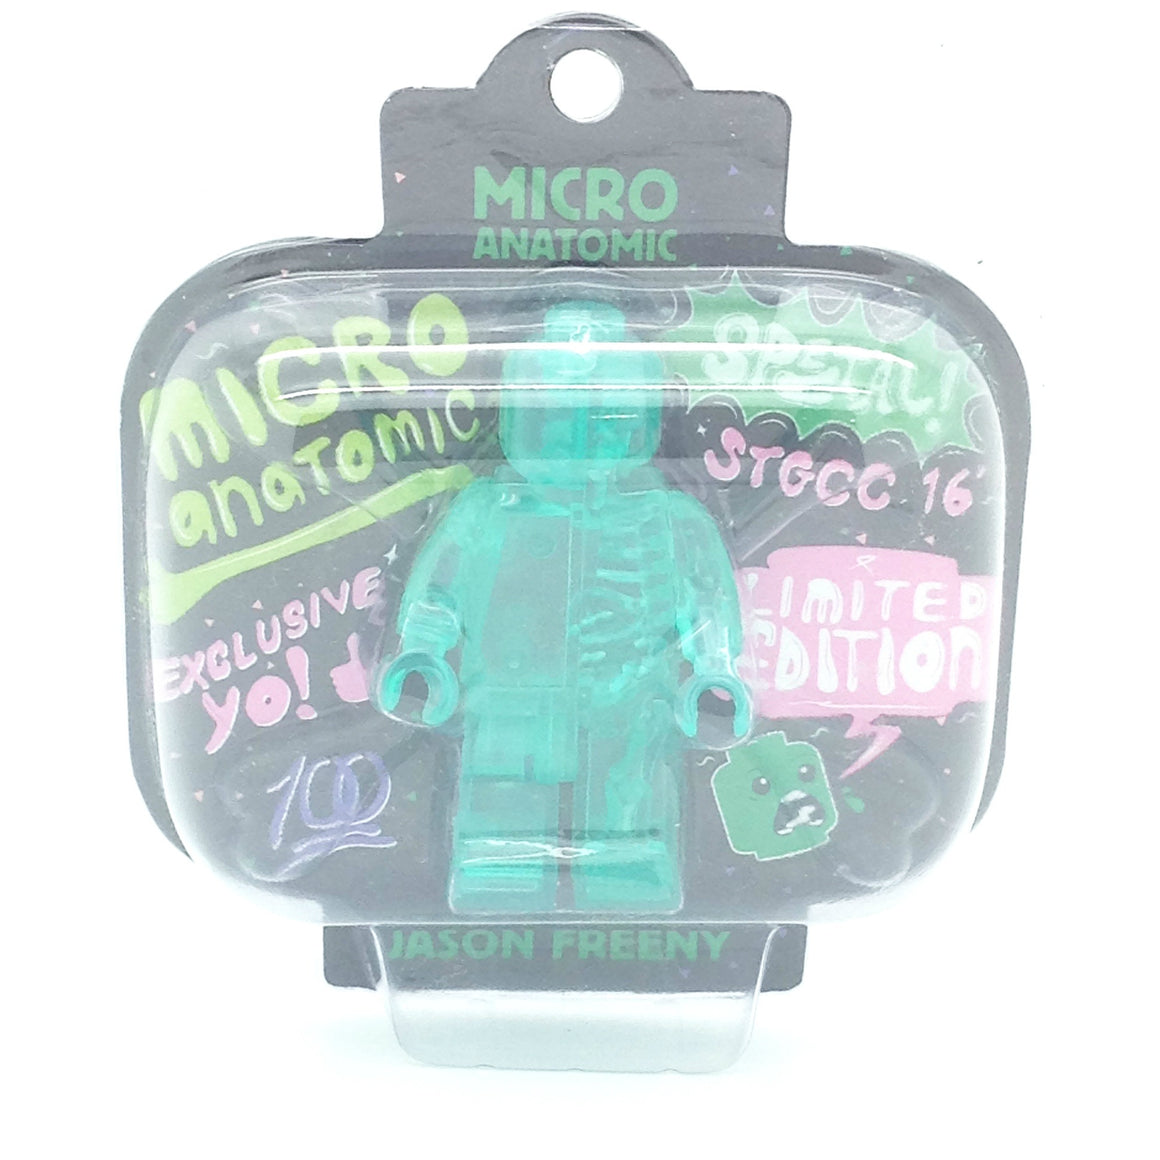 Micro Anatomic Green Figure by Jason Freeny STGCC 2106 Edition